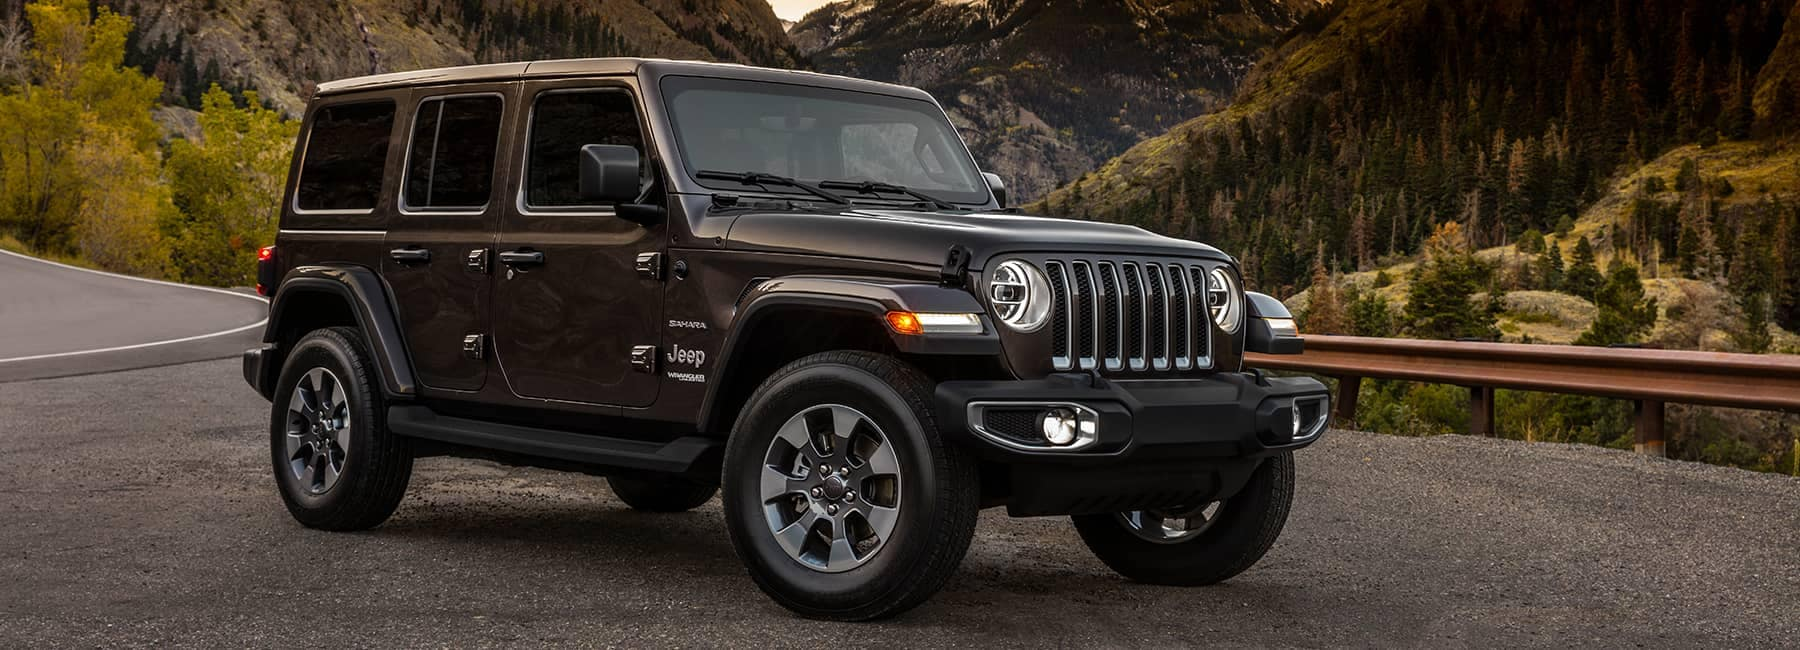 Build Your Dream Jeep Covert Chrysler Dodge Jeep Ram